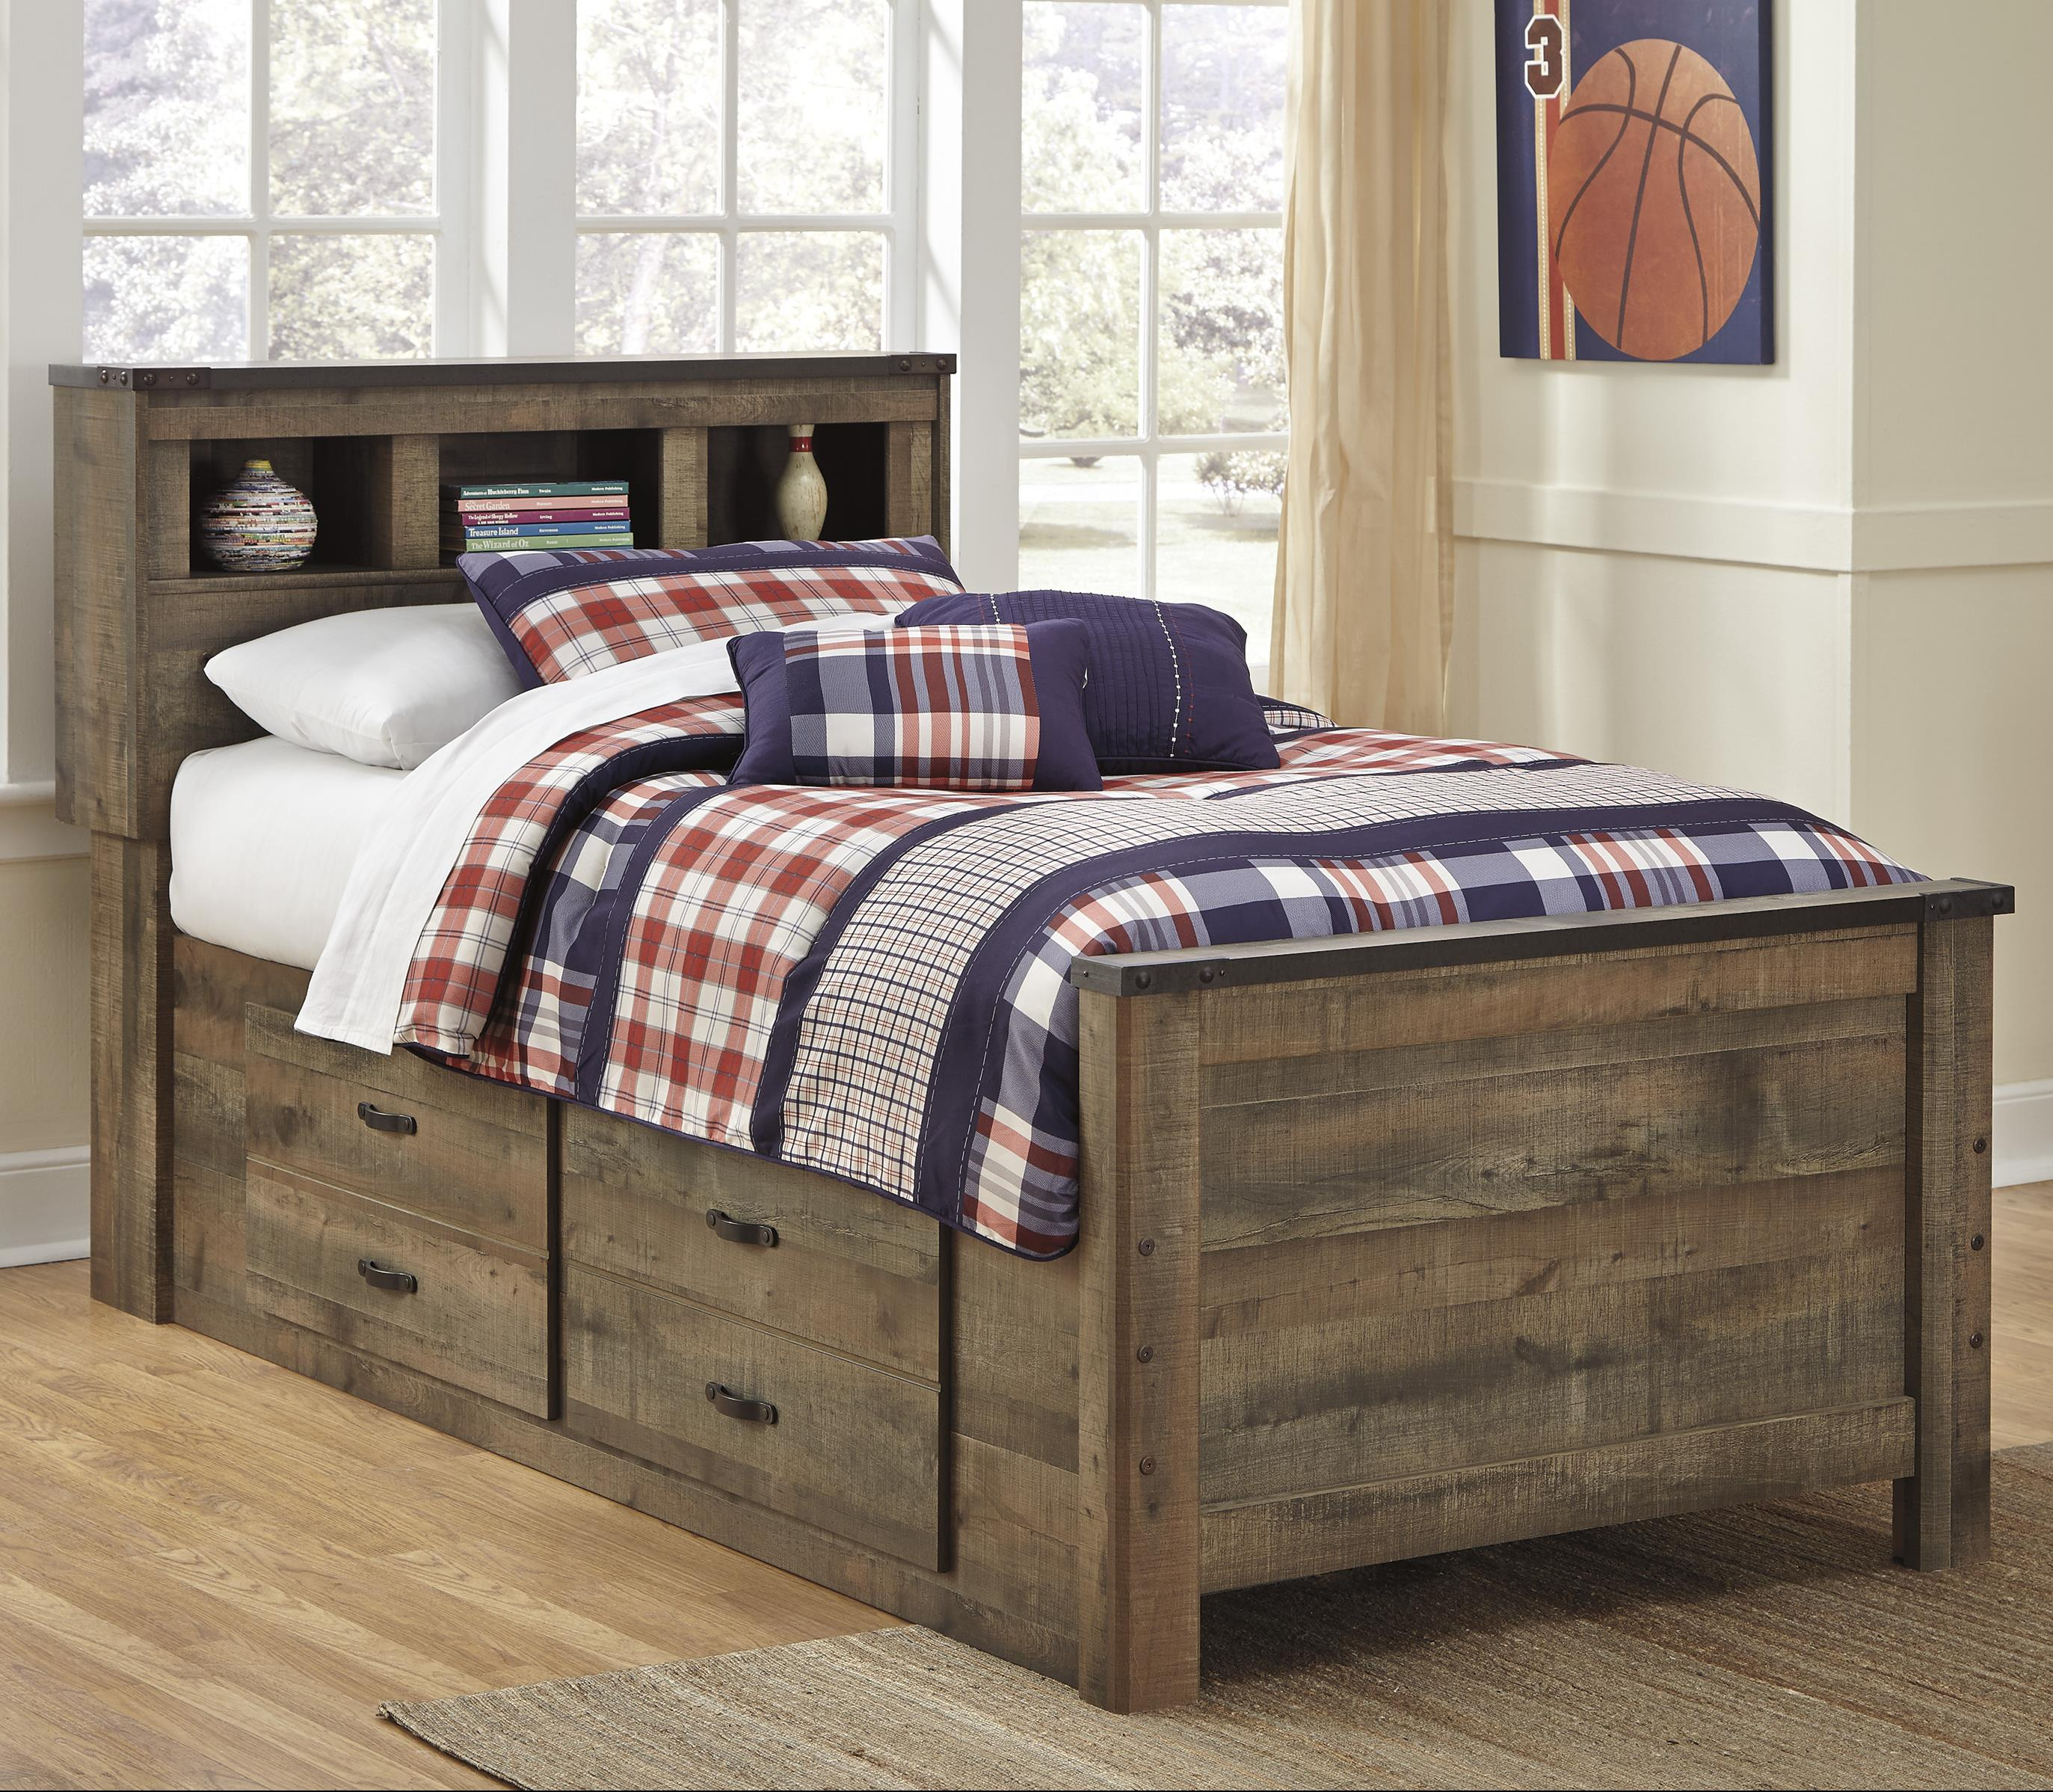 Ashley rustic bedroom furniture - Signature Design By Ashley Trinell Twin Bookcase Bed With Under Bed Storage Item Number